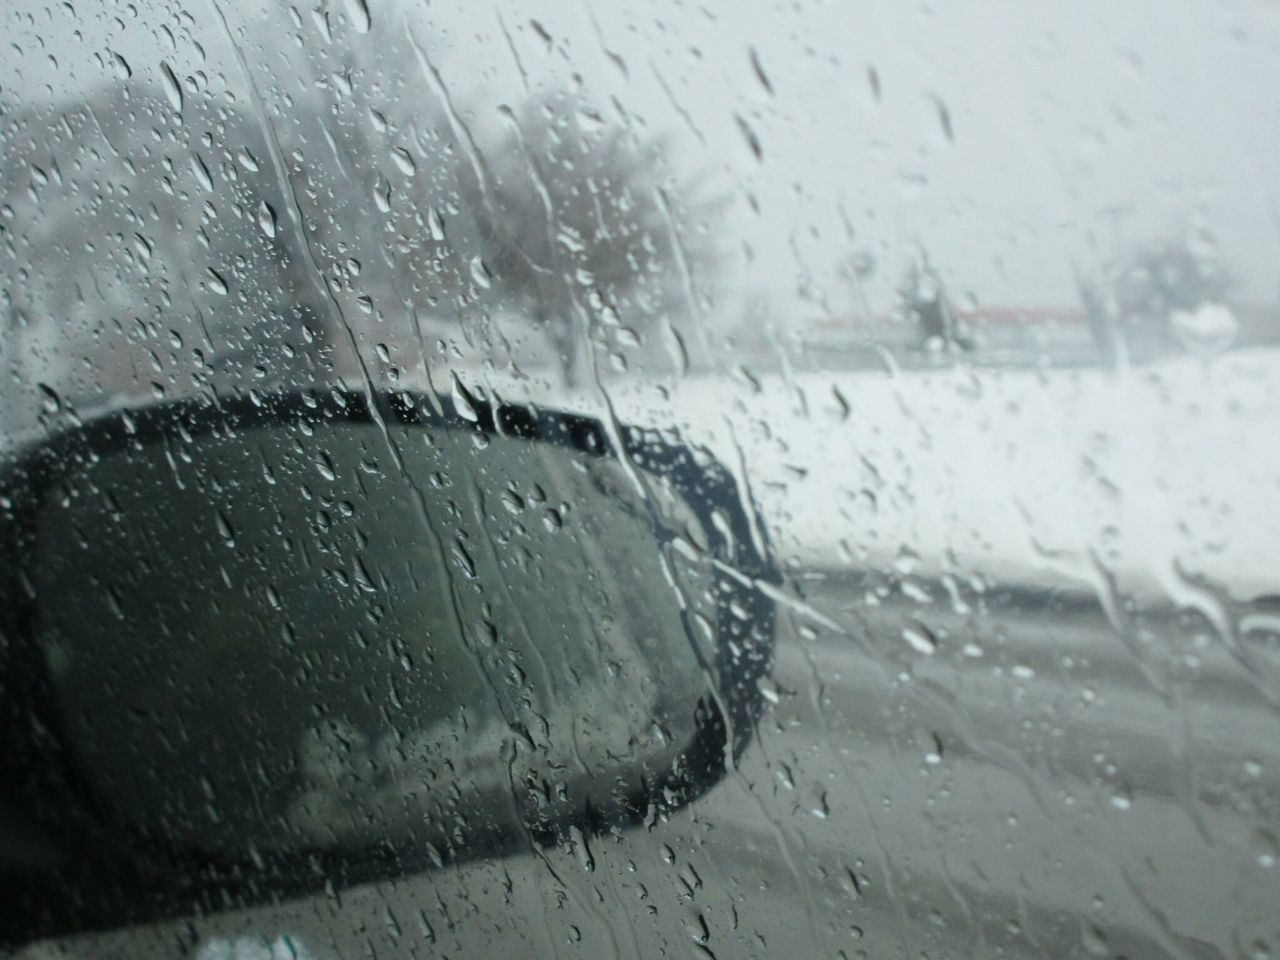 rain, drop, wet, window, water, raindrop, glass - material, rainy season, weather, no people, windshield, full frame, indoors, car, backgrounds, close-up, day, transportation, looking through window, nature, sky